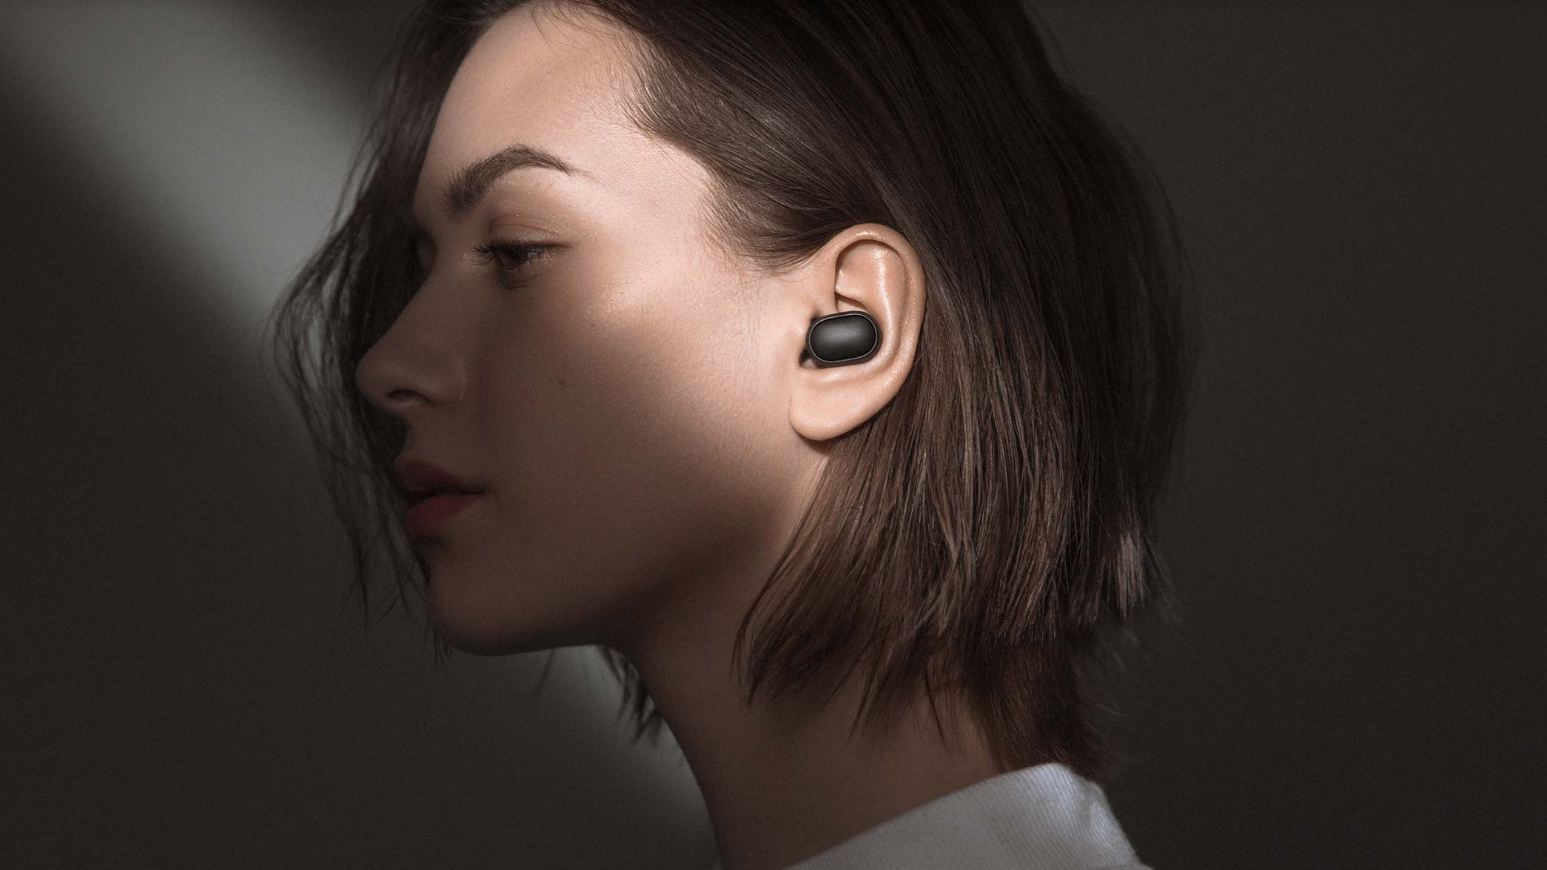 The Redmi Airdots S Is An Unbelievably Affordable Pair Of True Wireless Earbuds Techradar